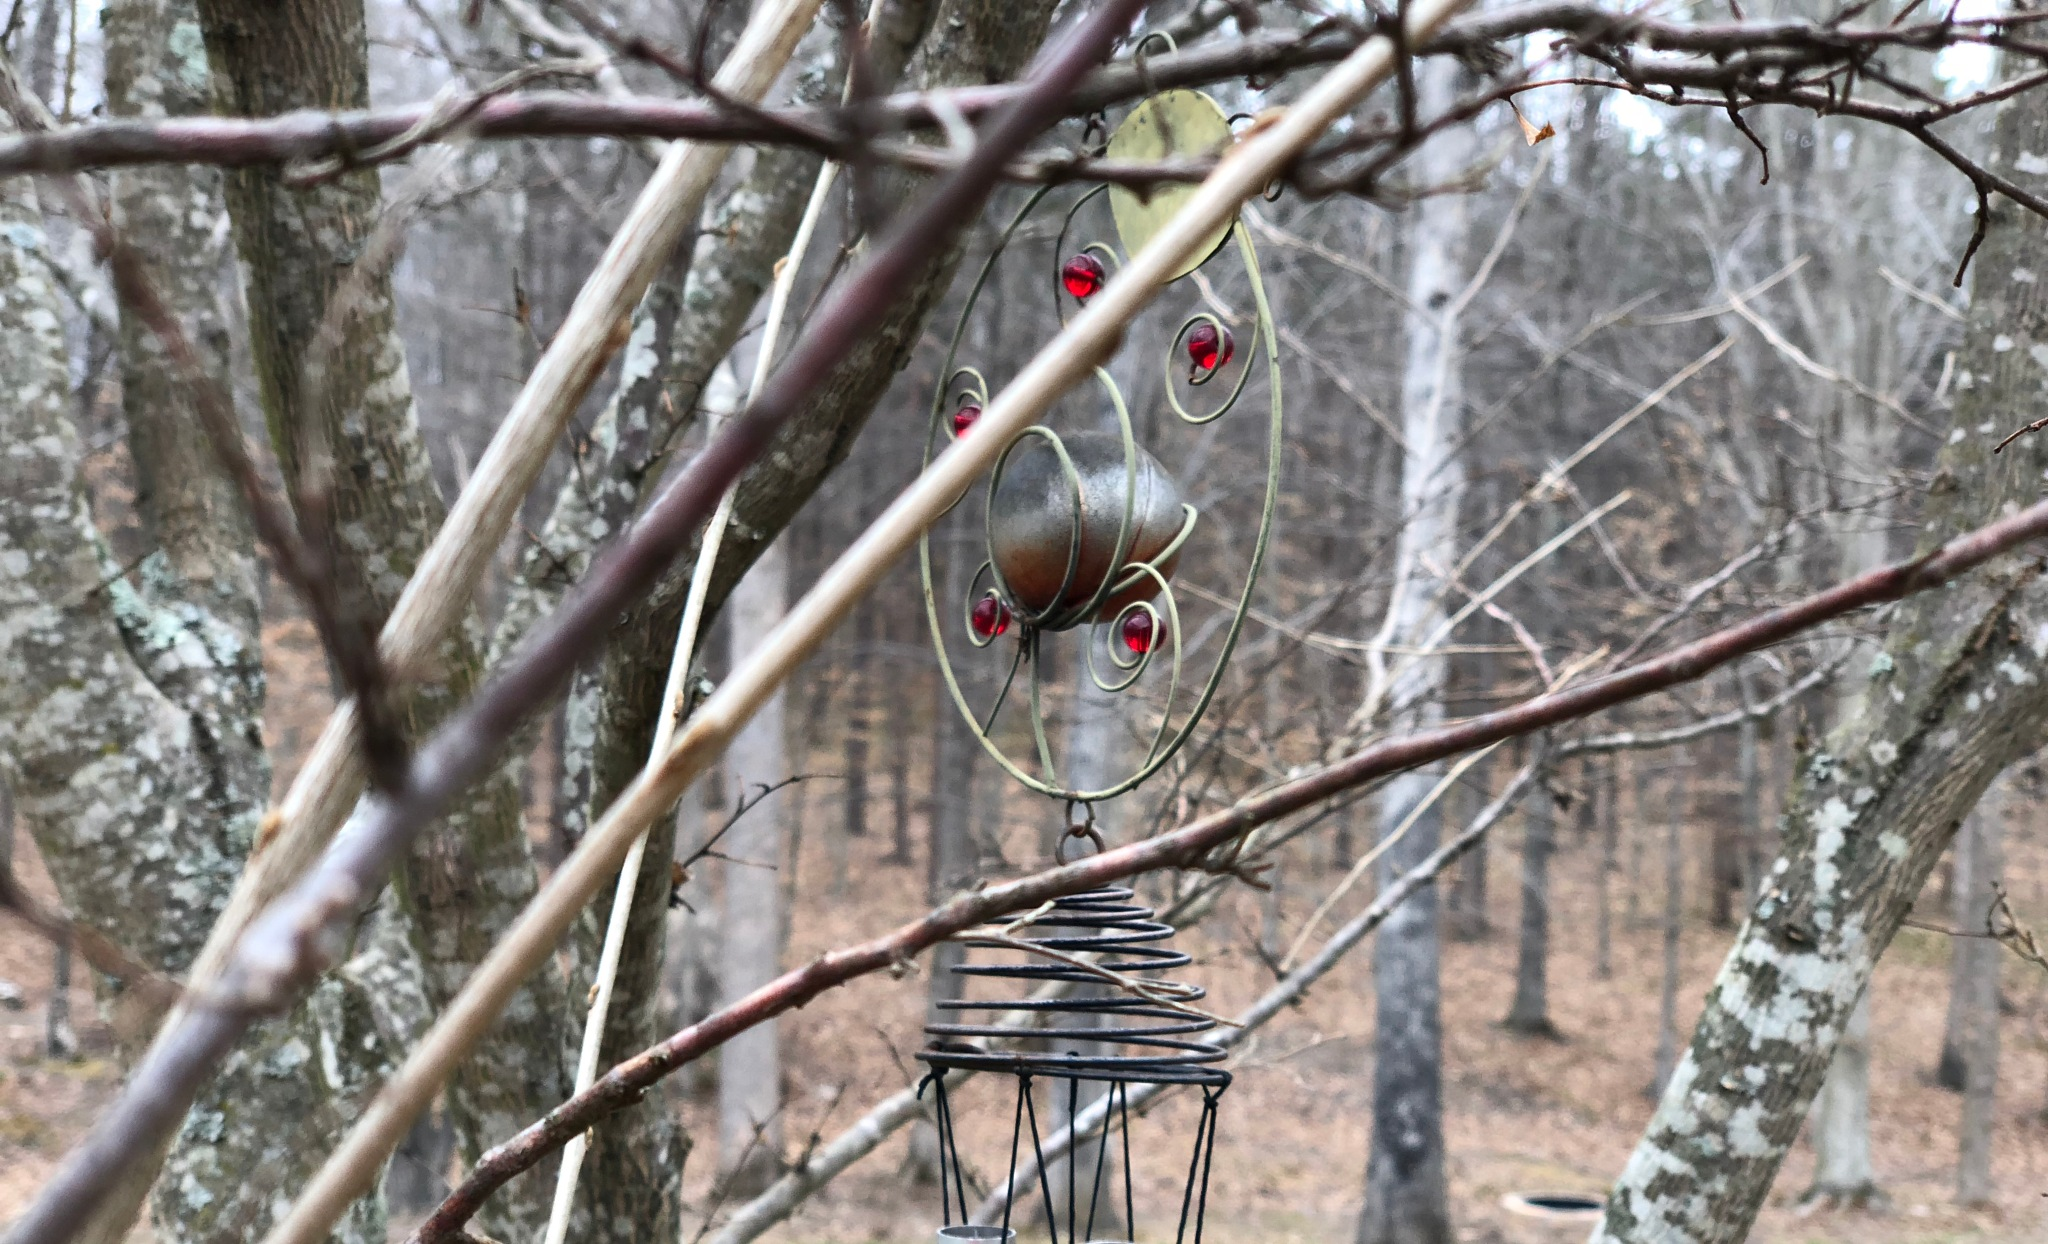 Wind Chime by Kristopher Raines